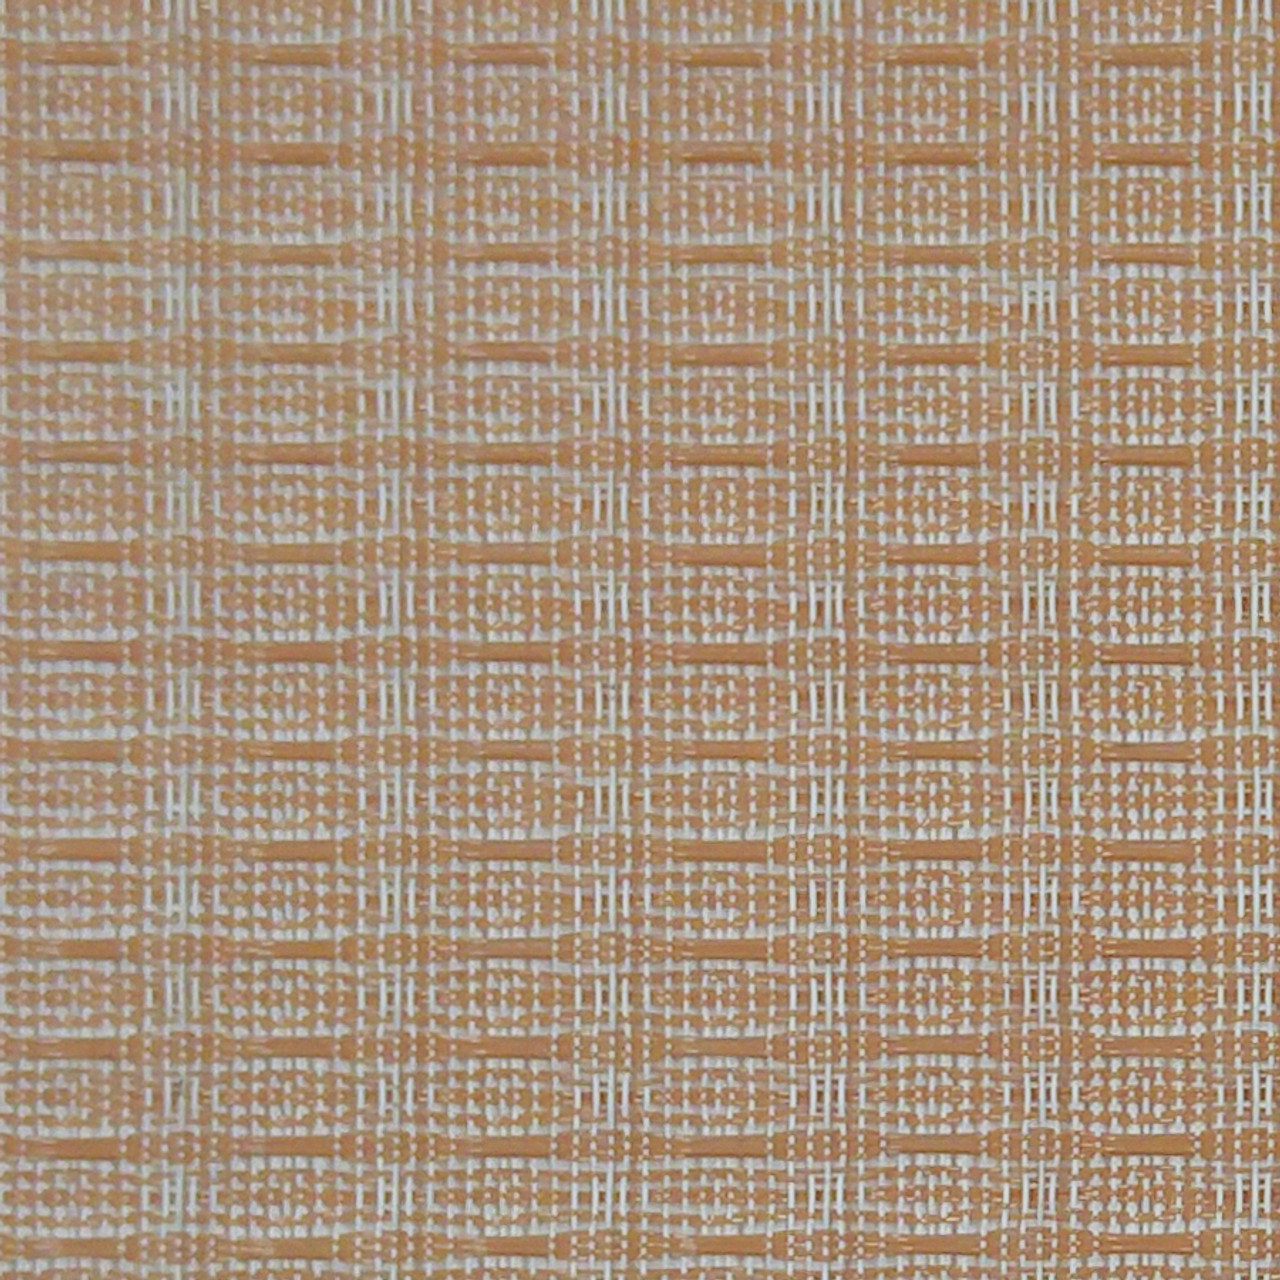 Light Wheat Fender® Style Grill Cloth